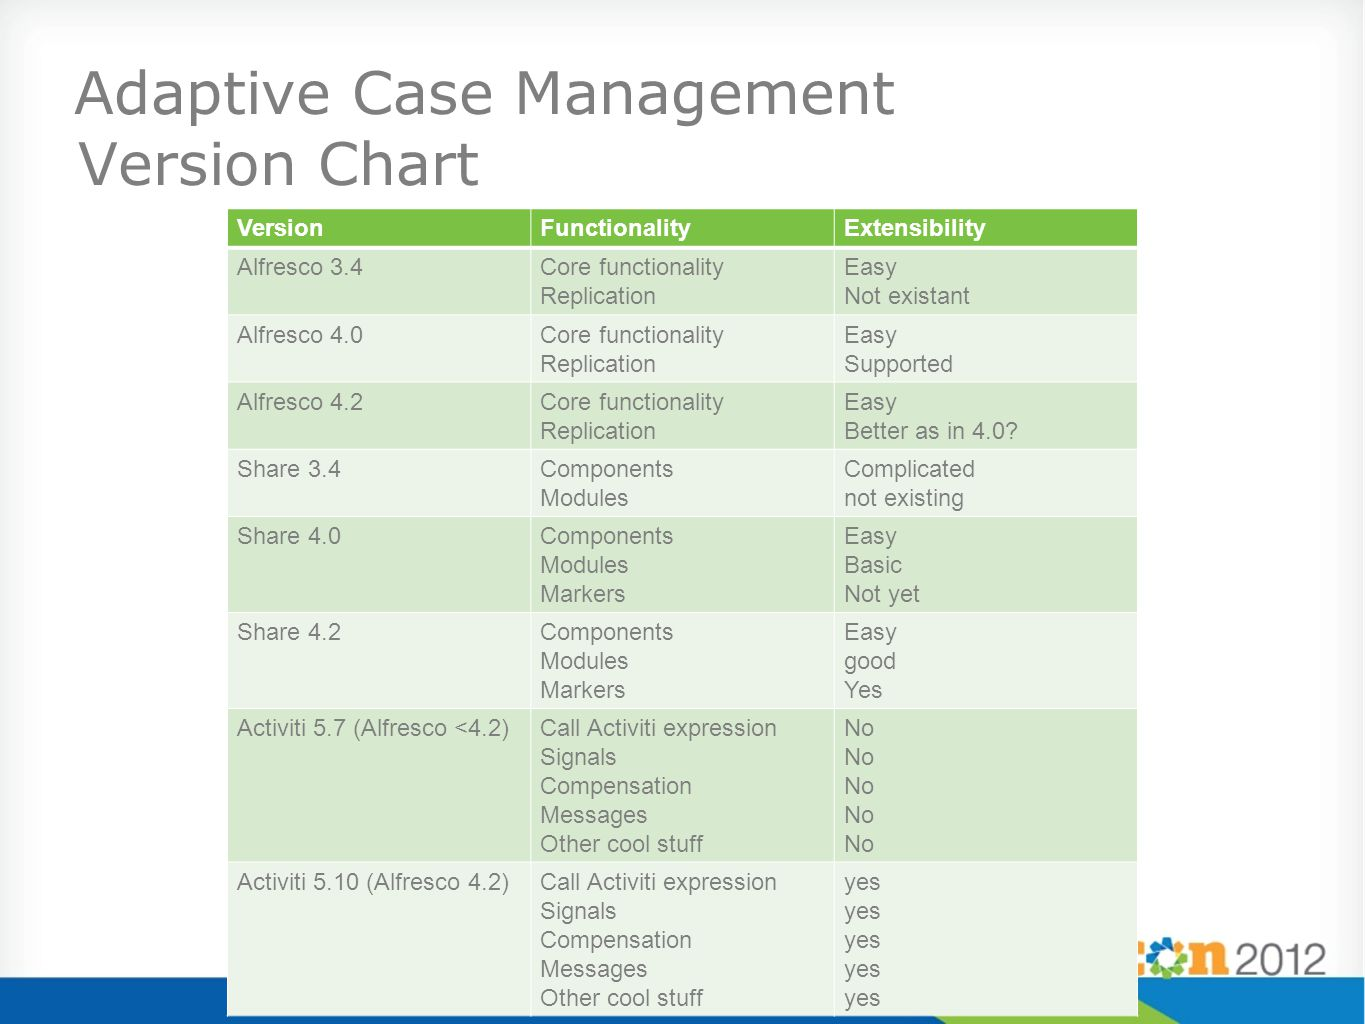 Adaptive Case Management Version Chart